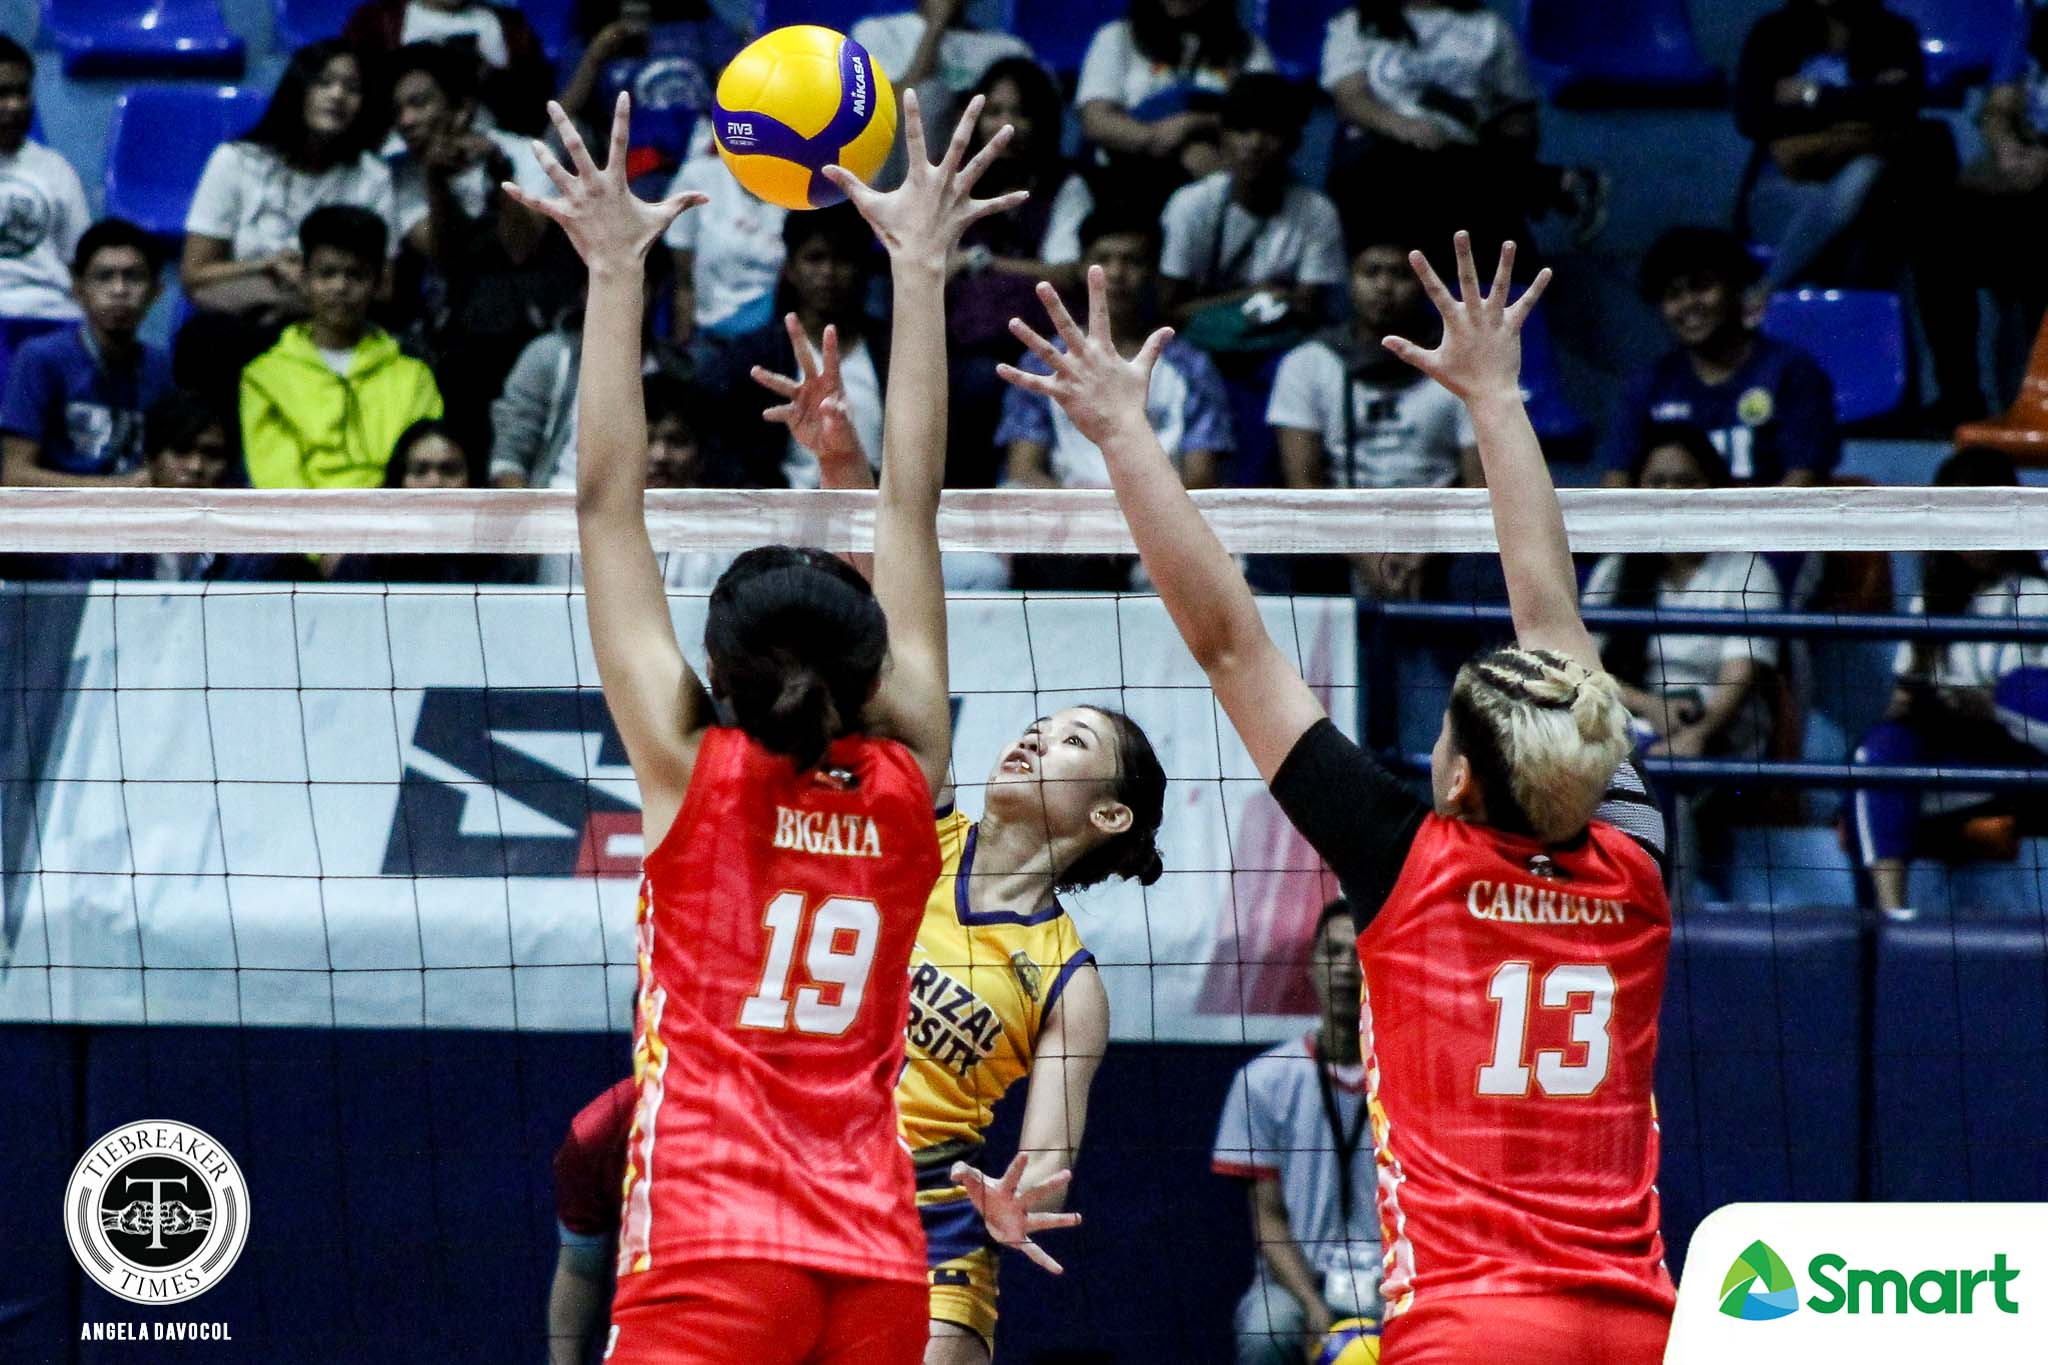 Tiebreaker Times Dolly Versoza comes of age as she becomes JRU's captain JRU NCAA News Volleyball  NCAA Season 95 Women's Volleyball NCAA Season 95 JRU Women's Volleyball Dolly Versoza